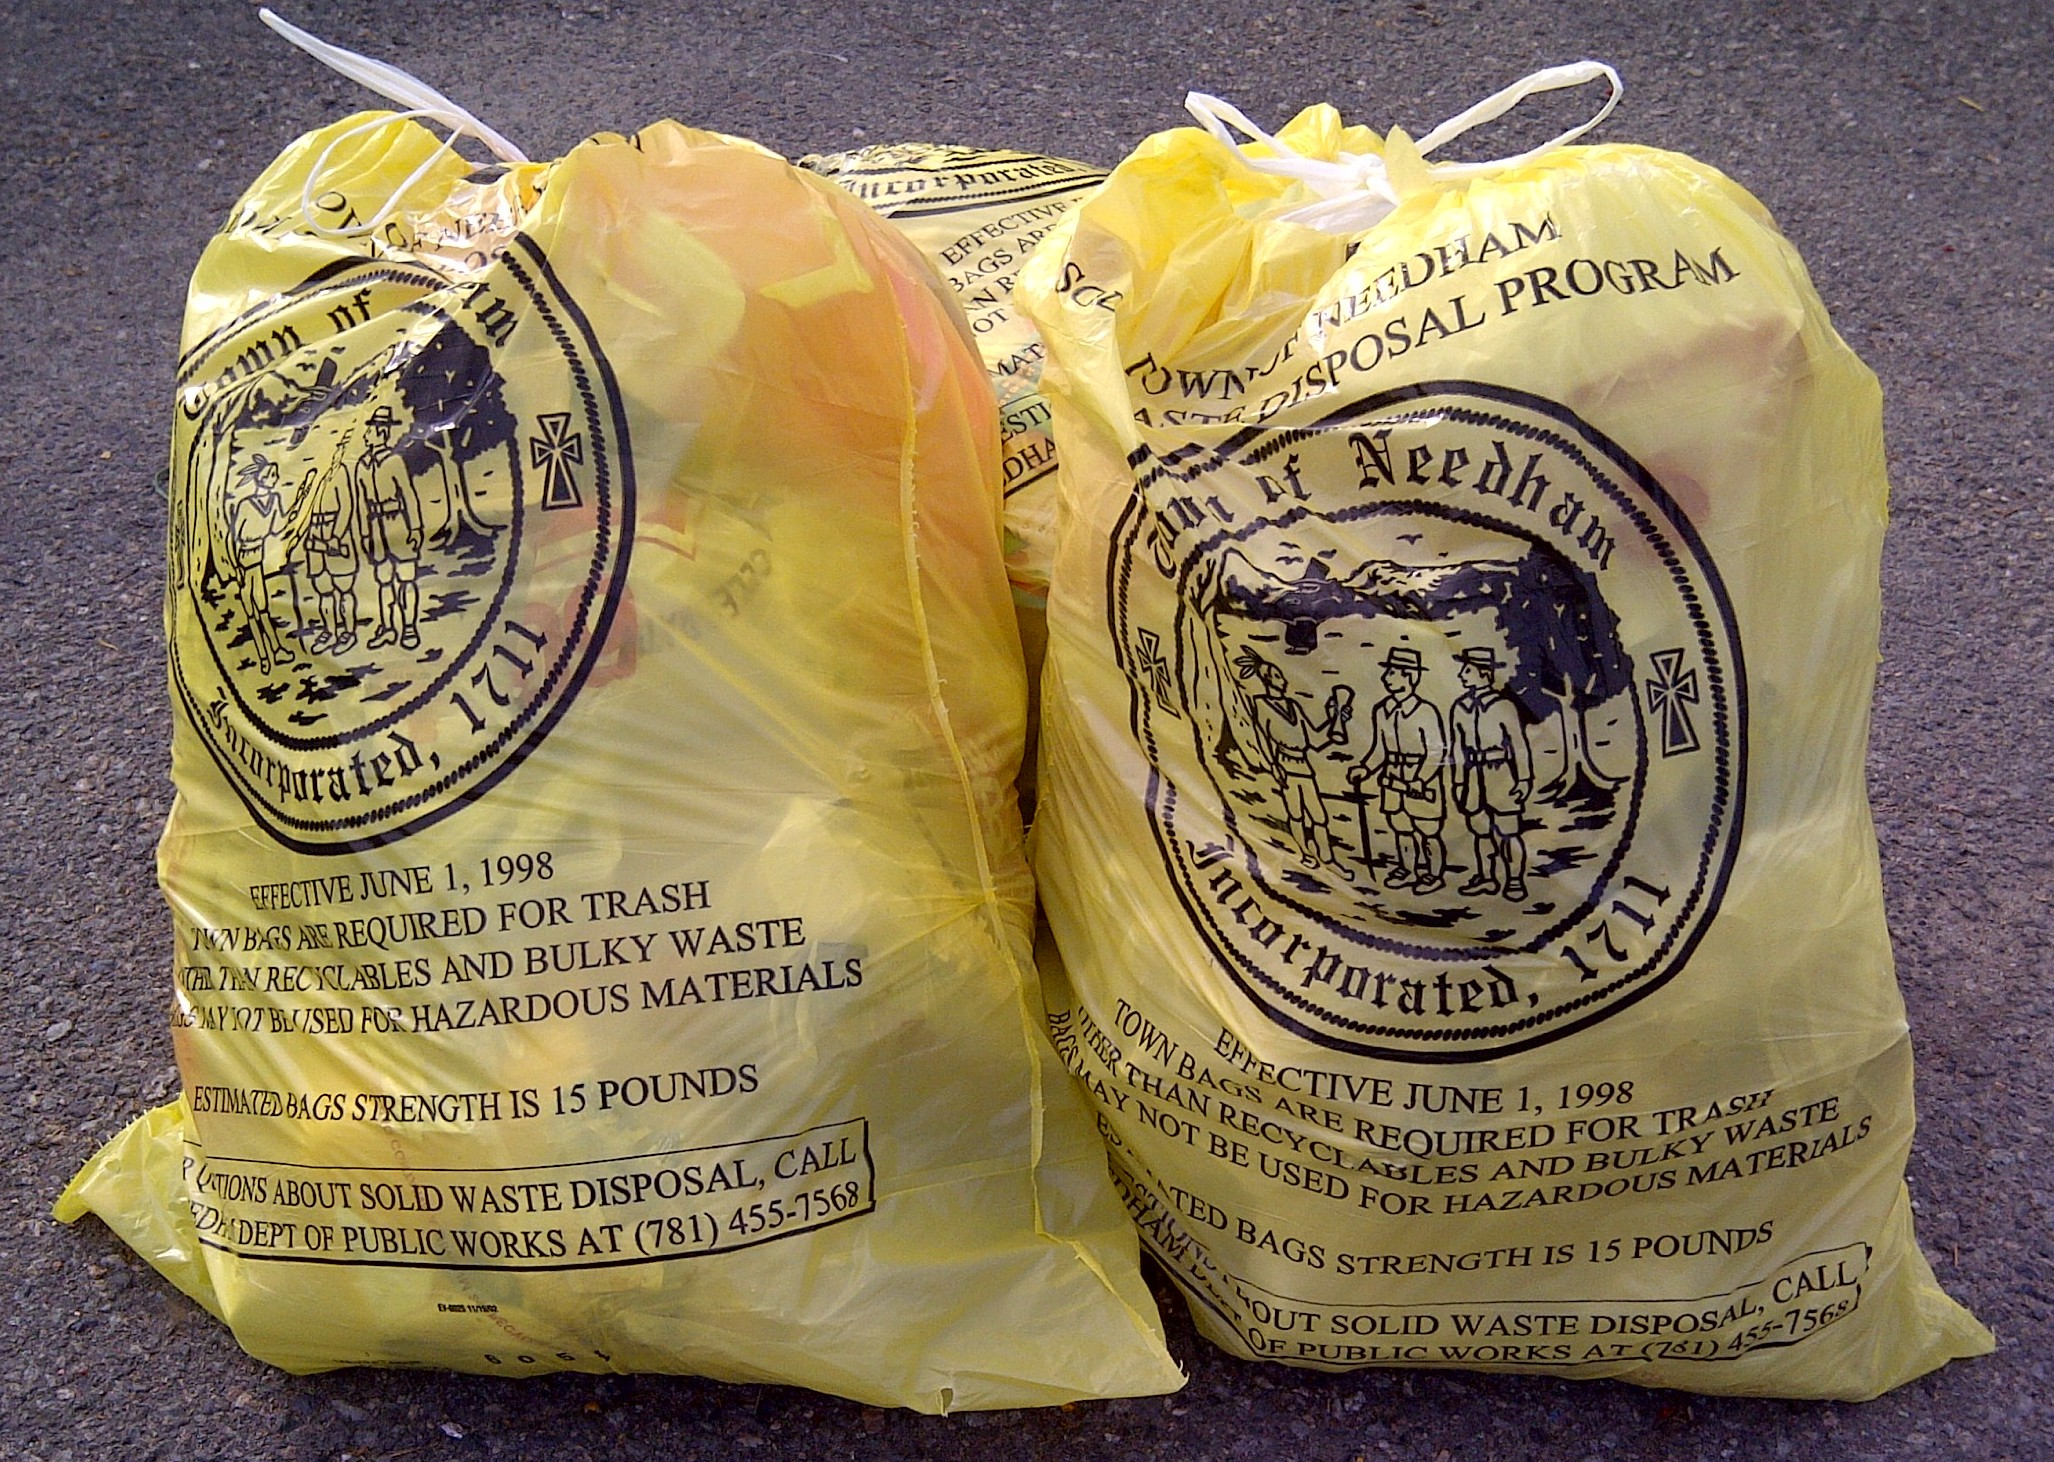 Needham Yellow Bags